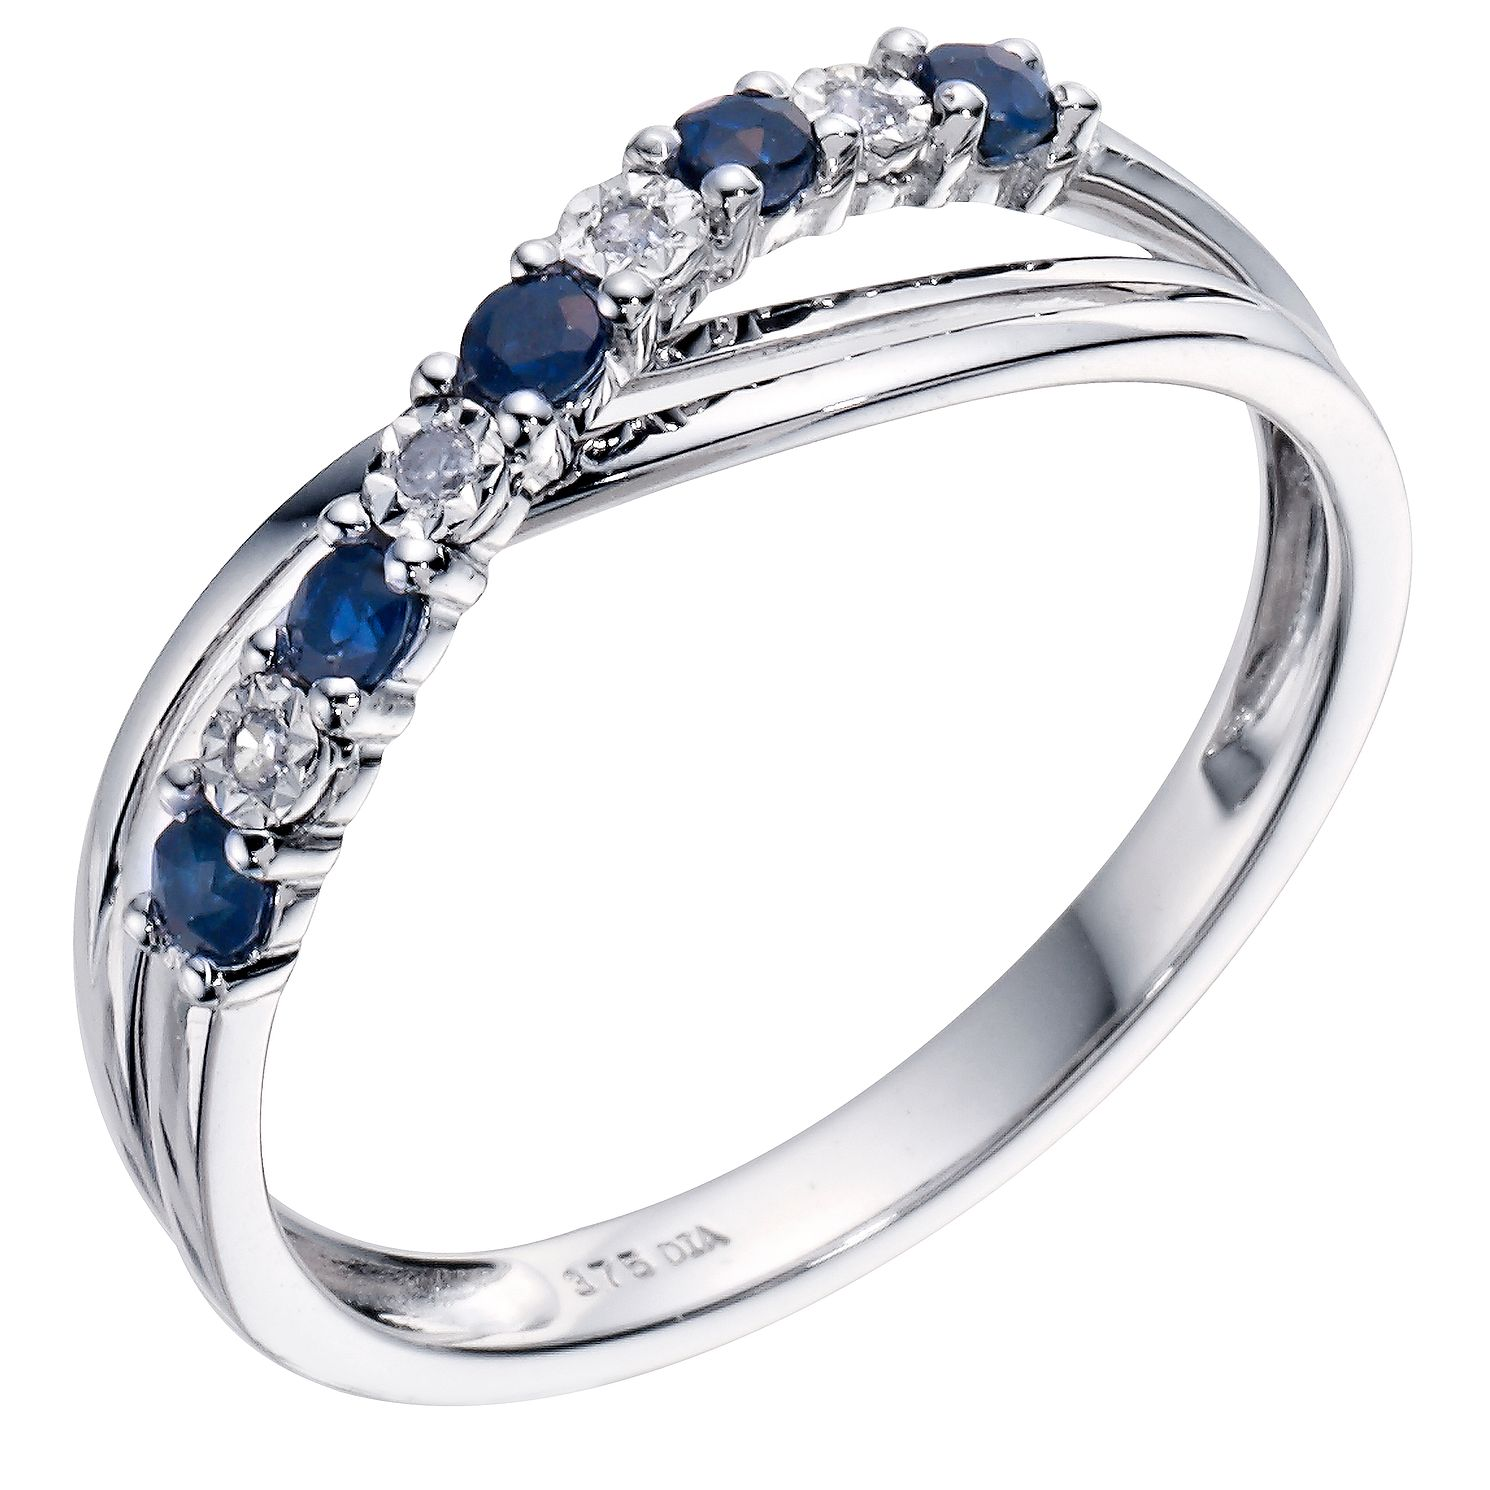 marie jewellery sapphire precious natalie rings products white ring saffire